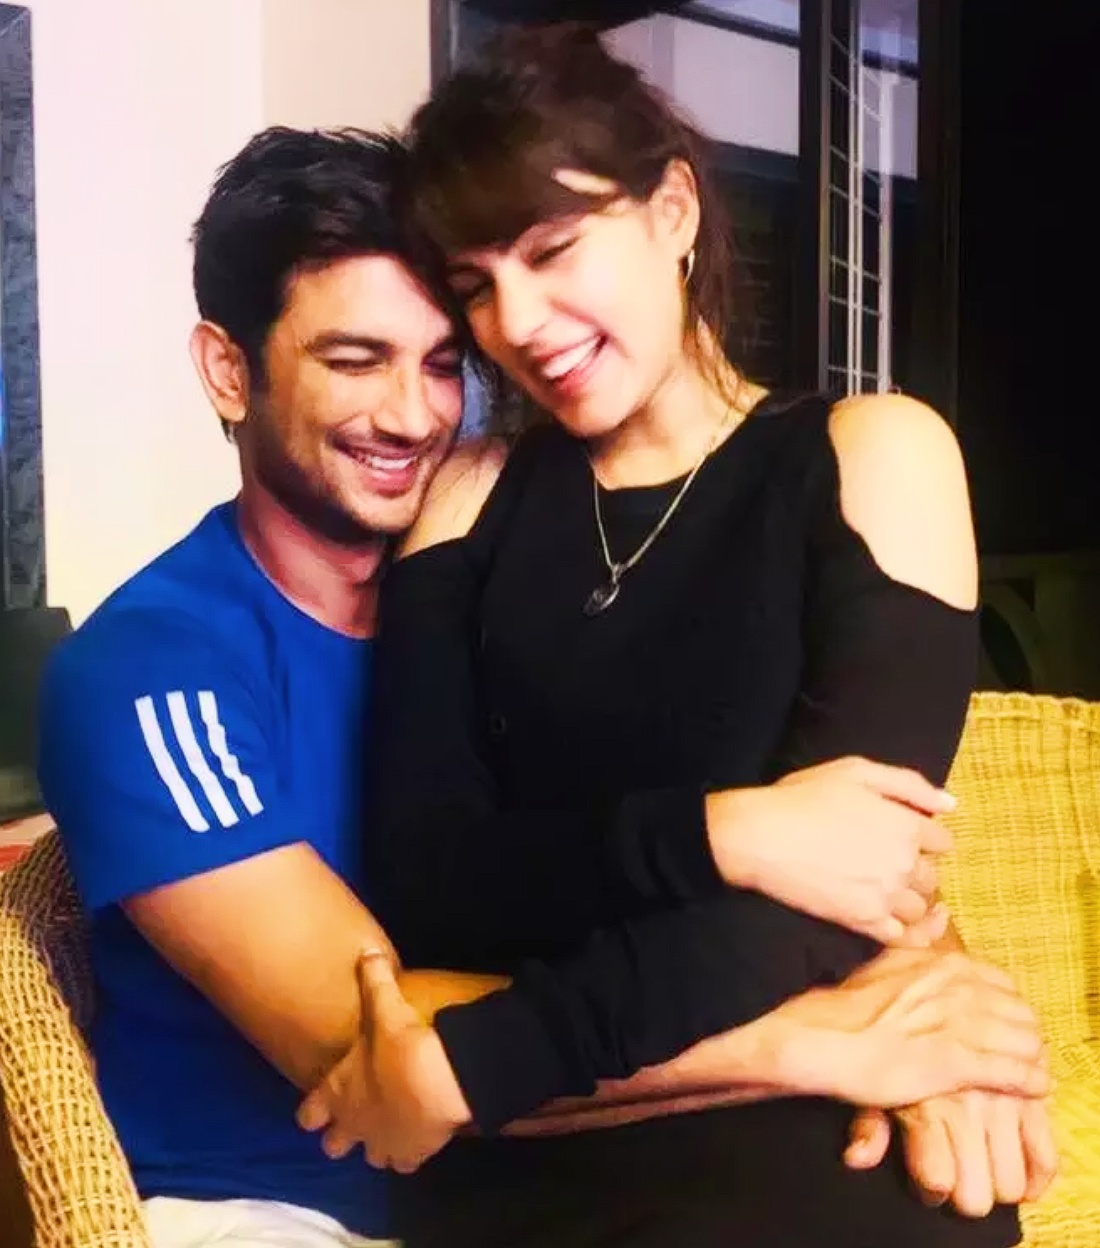 Rumoured GF Rhea Chakraborty shares happy pictures with Sushant Singh Rajput a month after his demise